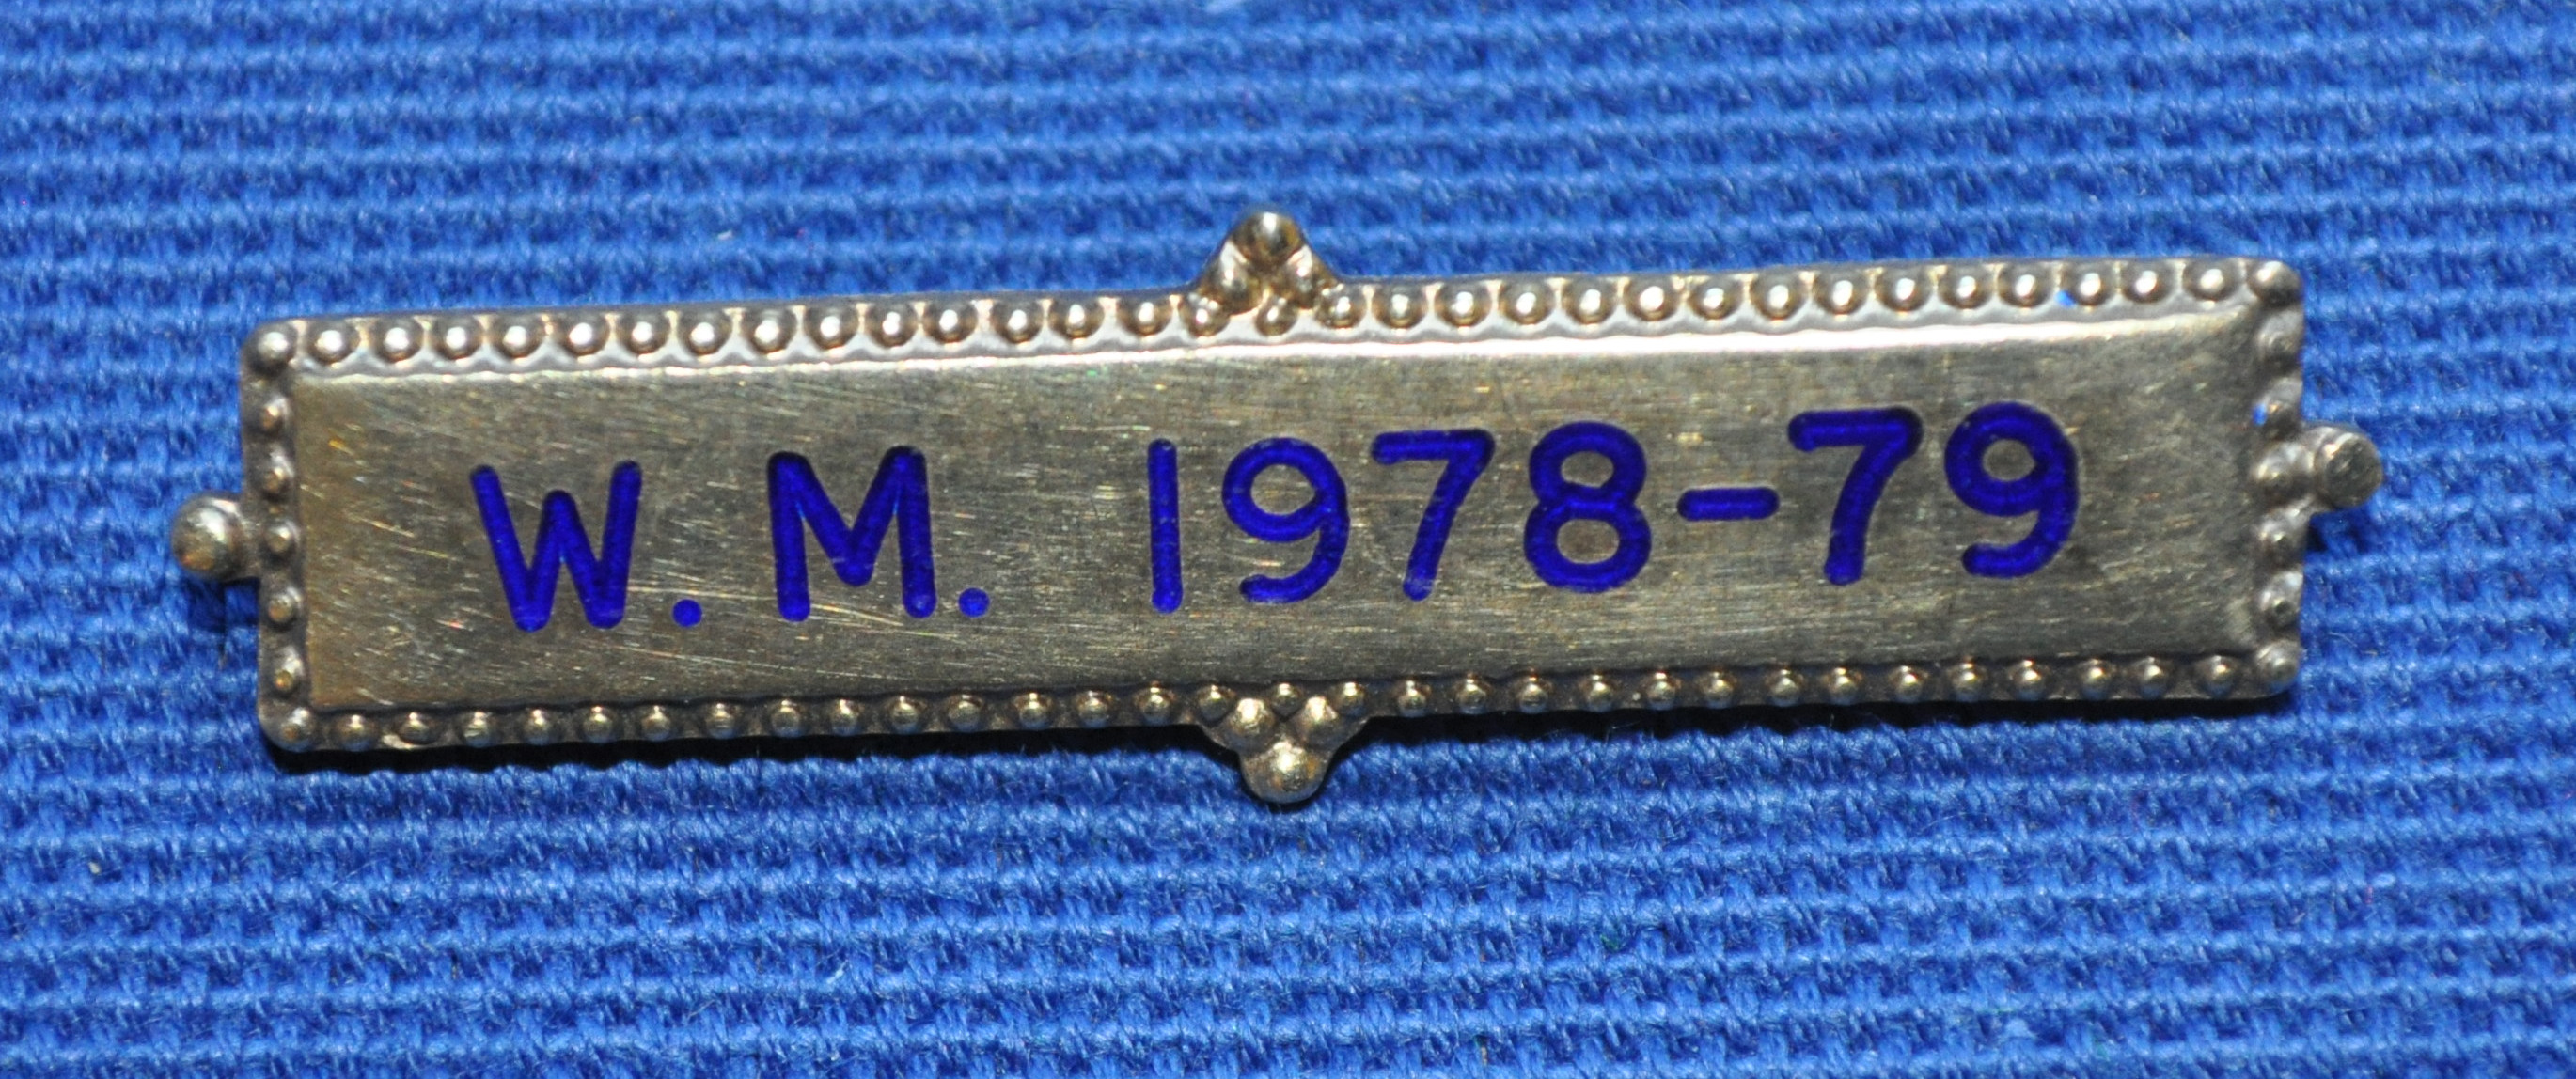 Breast Jewel Middle Date Bar 'WM 1978-79 - Engraved